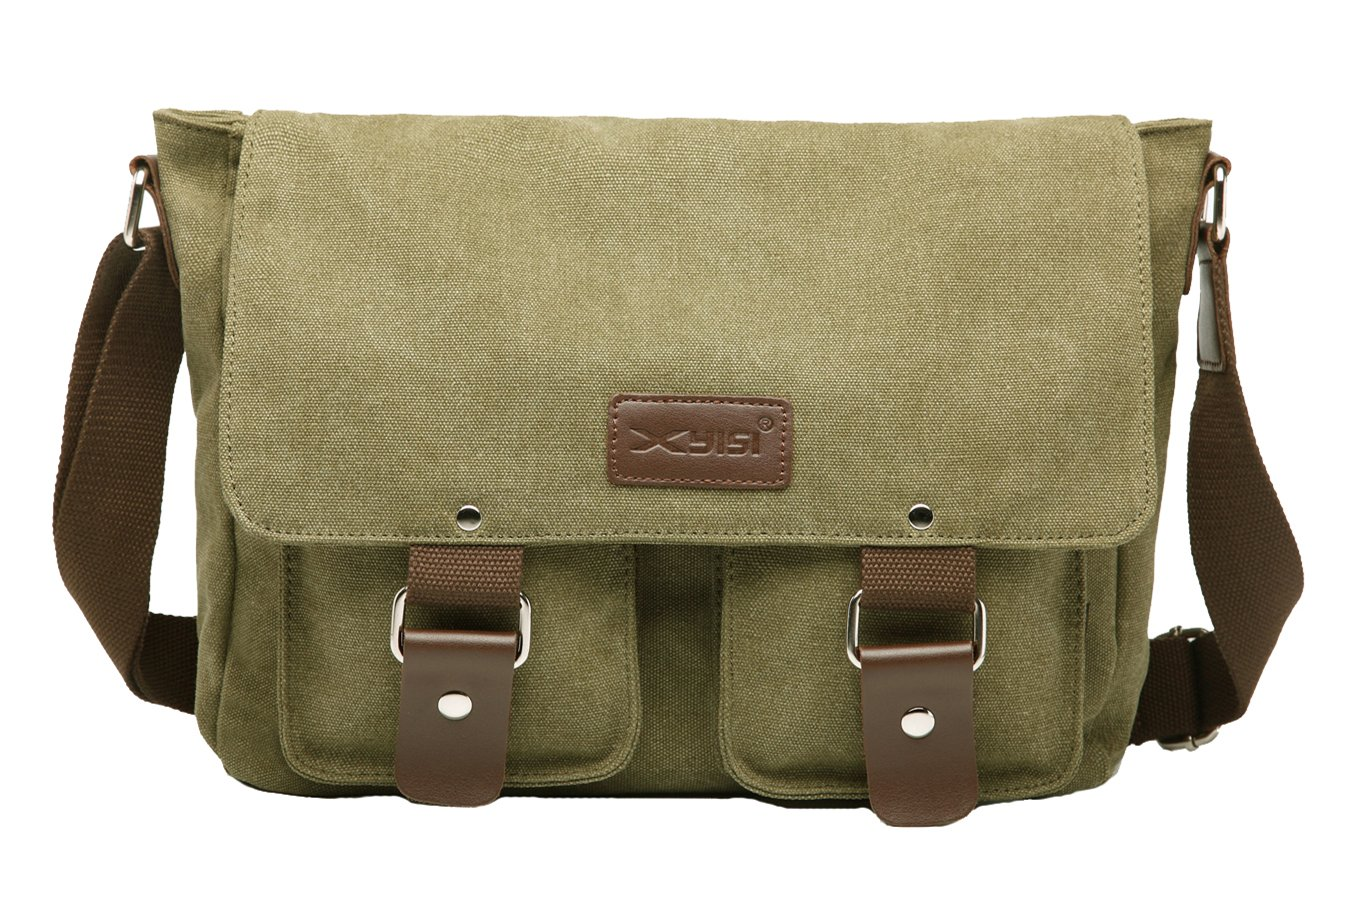 ALOVEY Canvas Satchel Laptop Messenger Bag Travel School Crossbody Shoulder Bags Green by ALOVEY